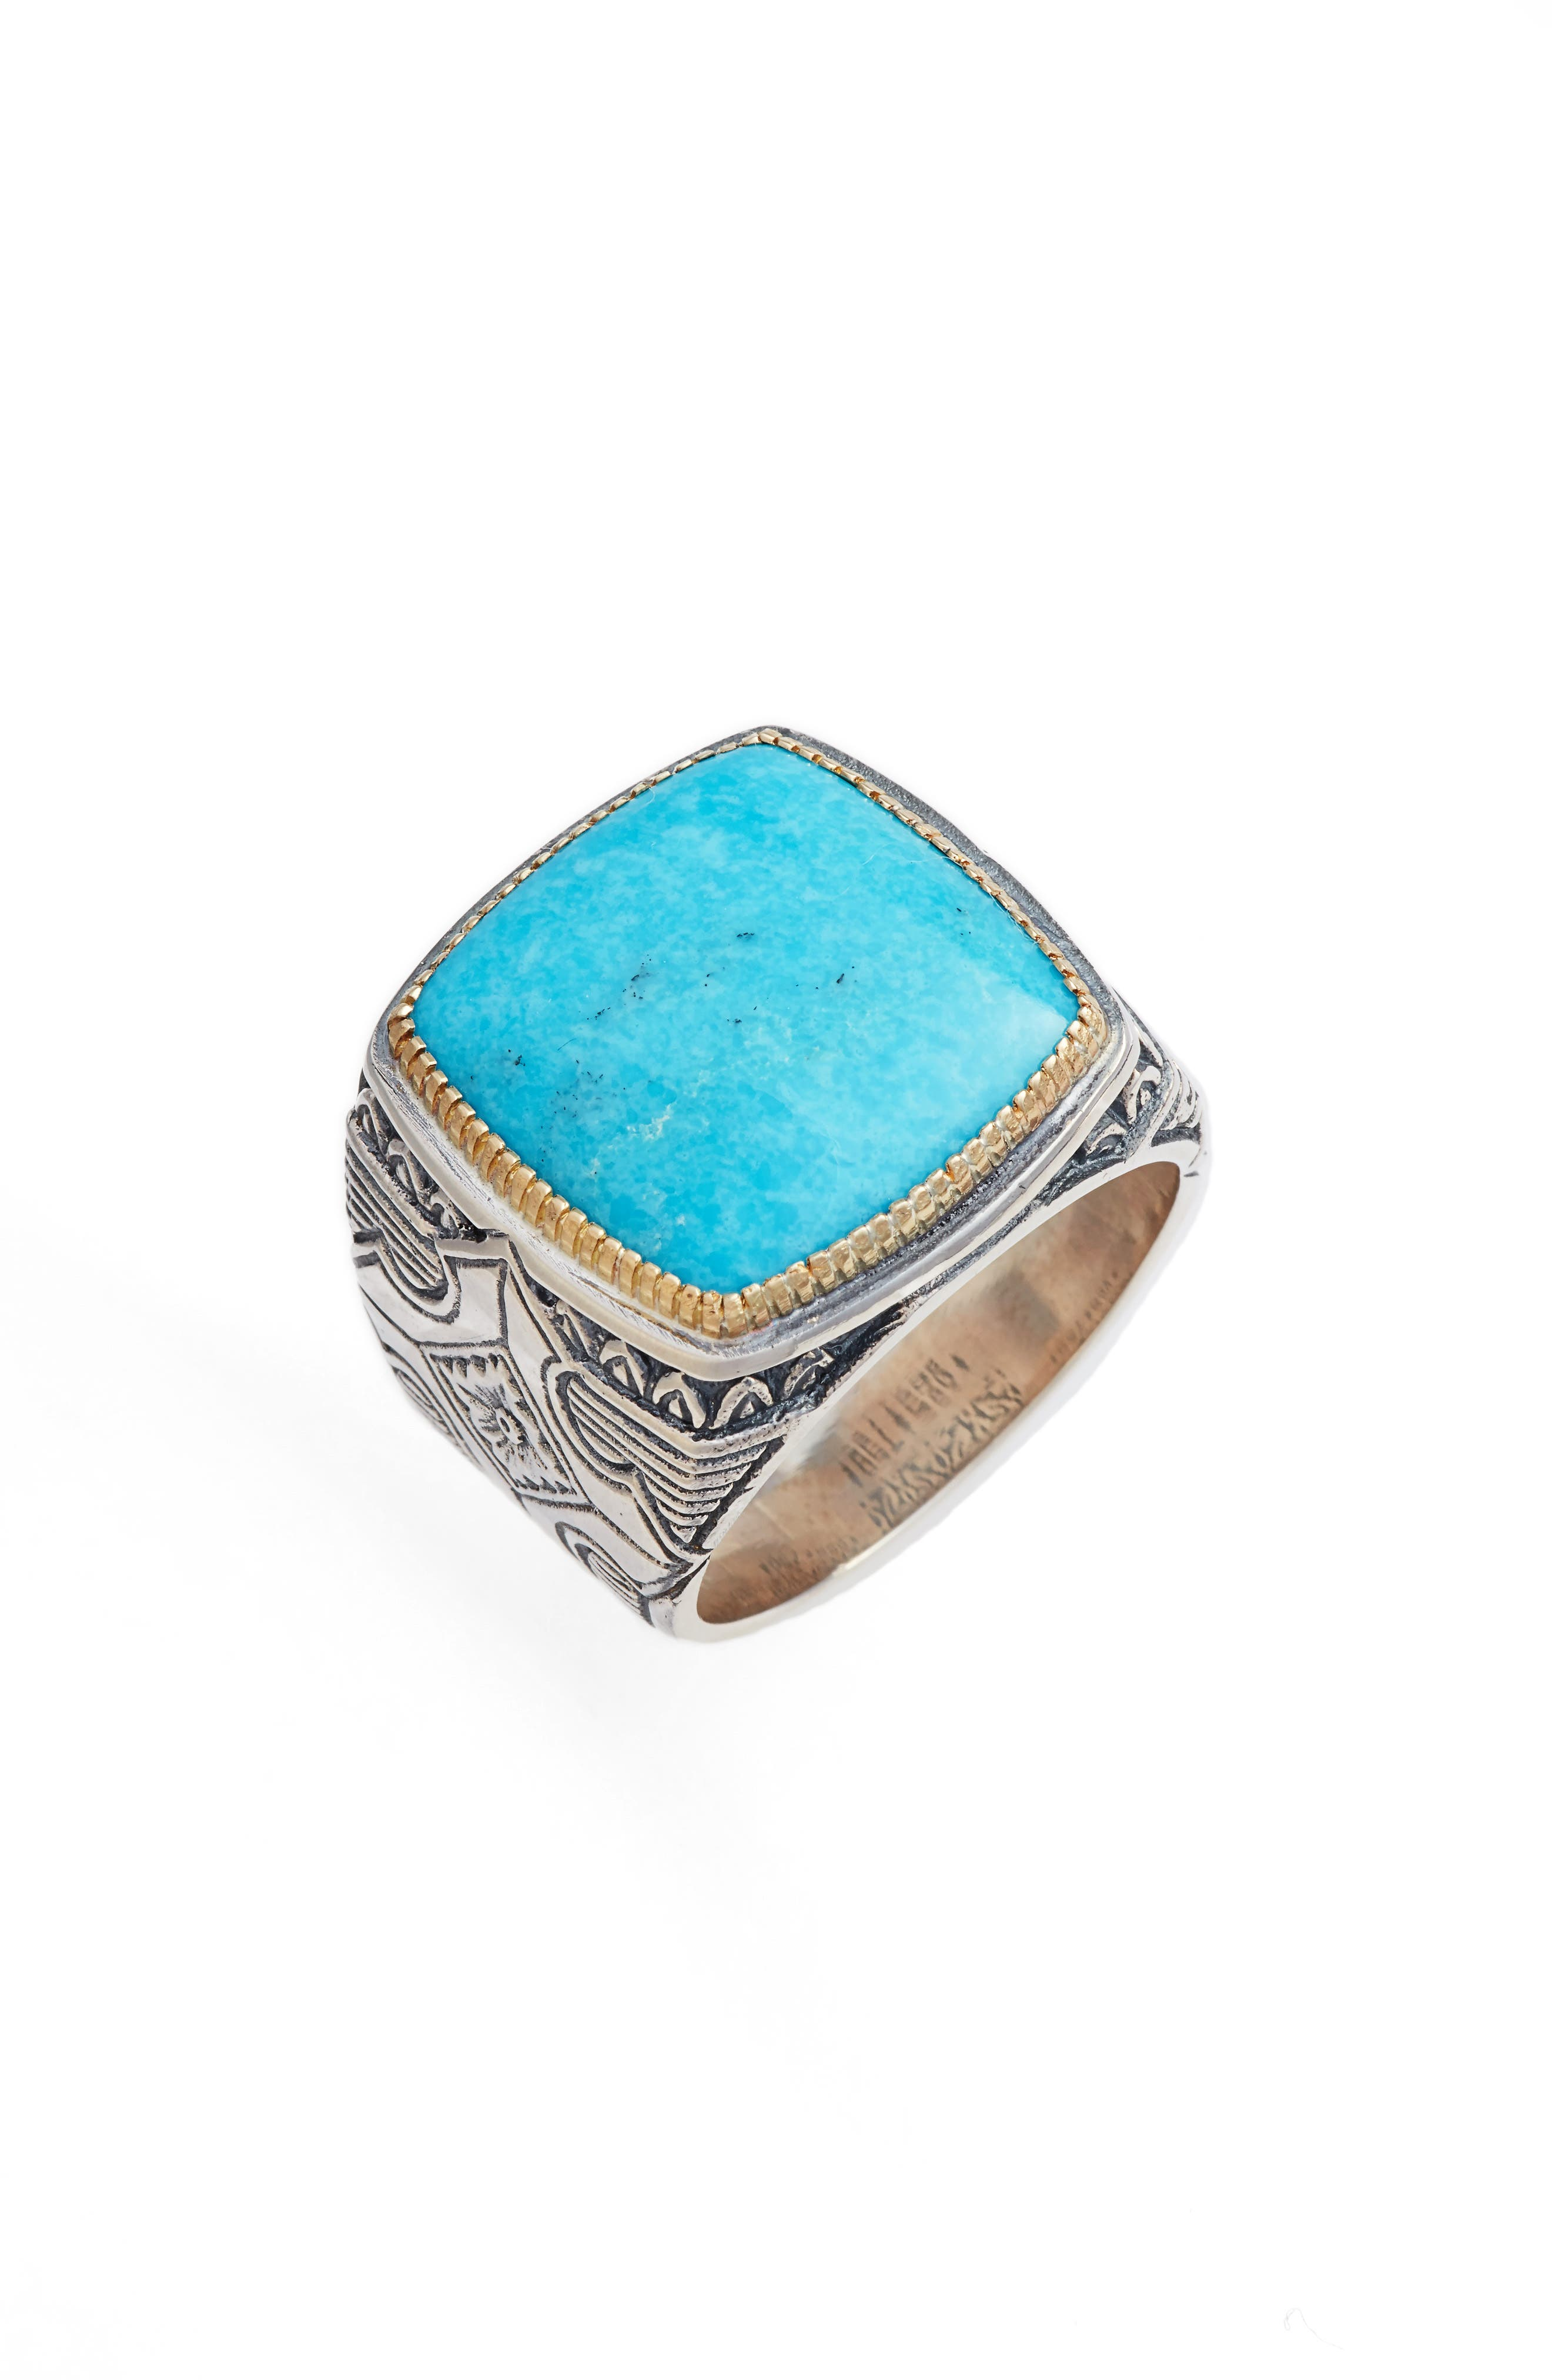 Heonos Square Turquoise Ring,                             Main thumbnail 1, color,                             Silver/ Gold/ Turquoise